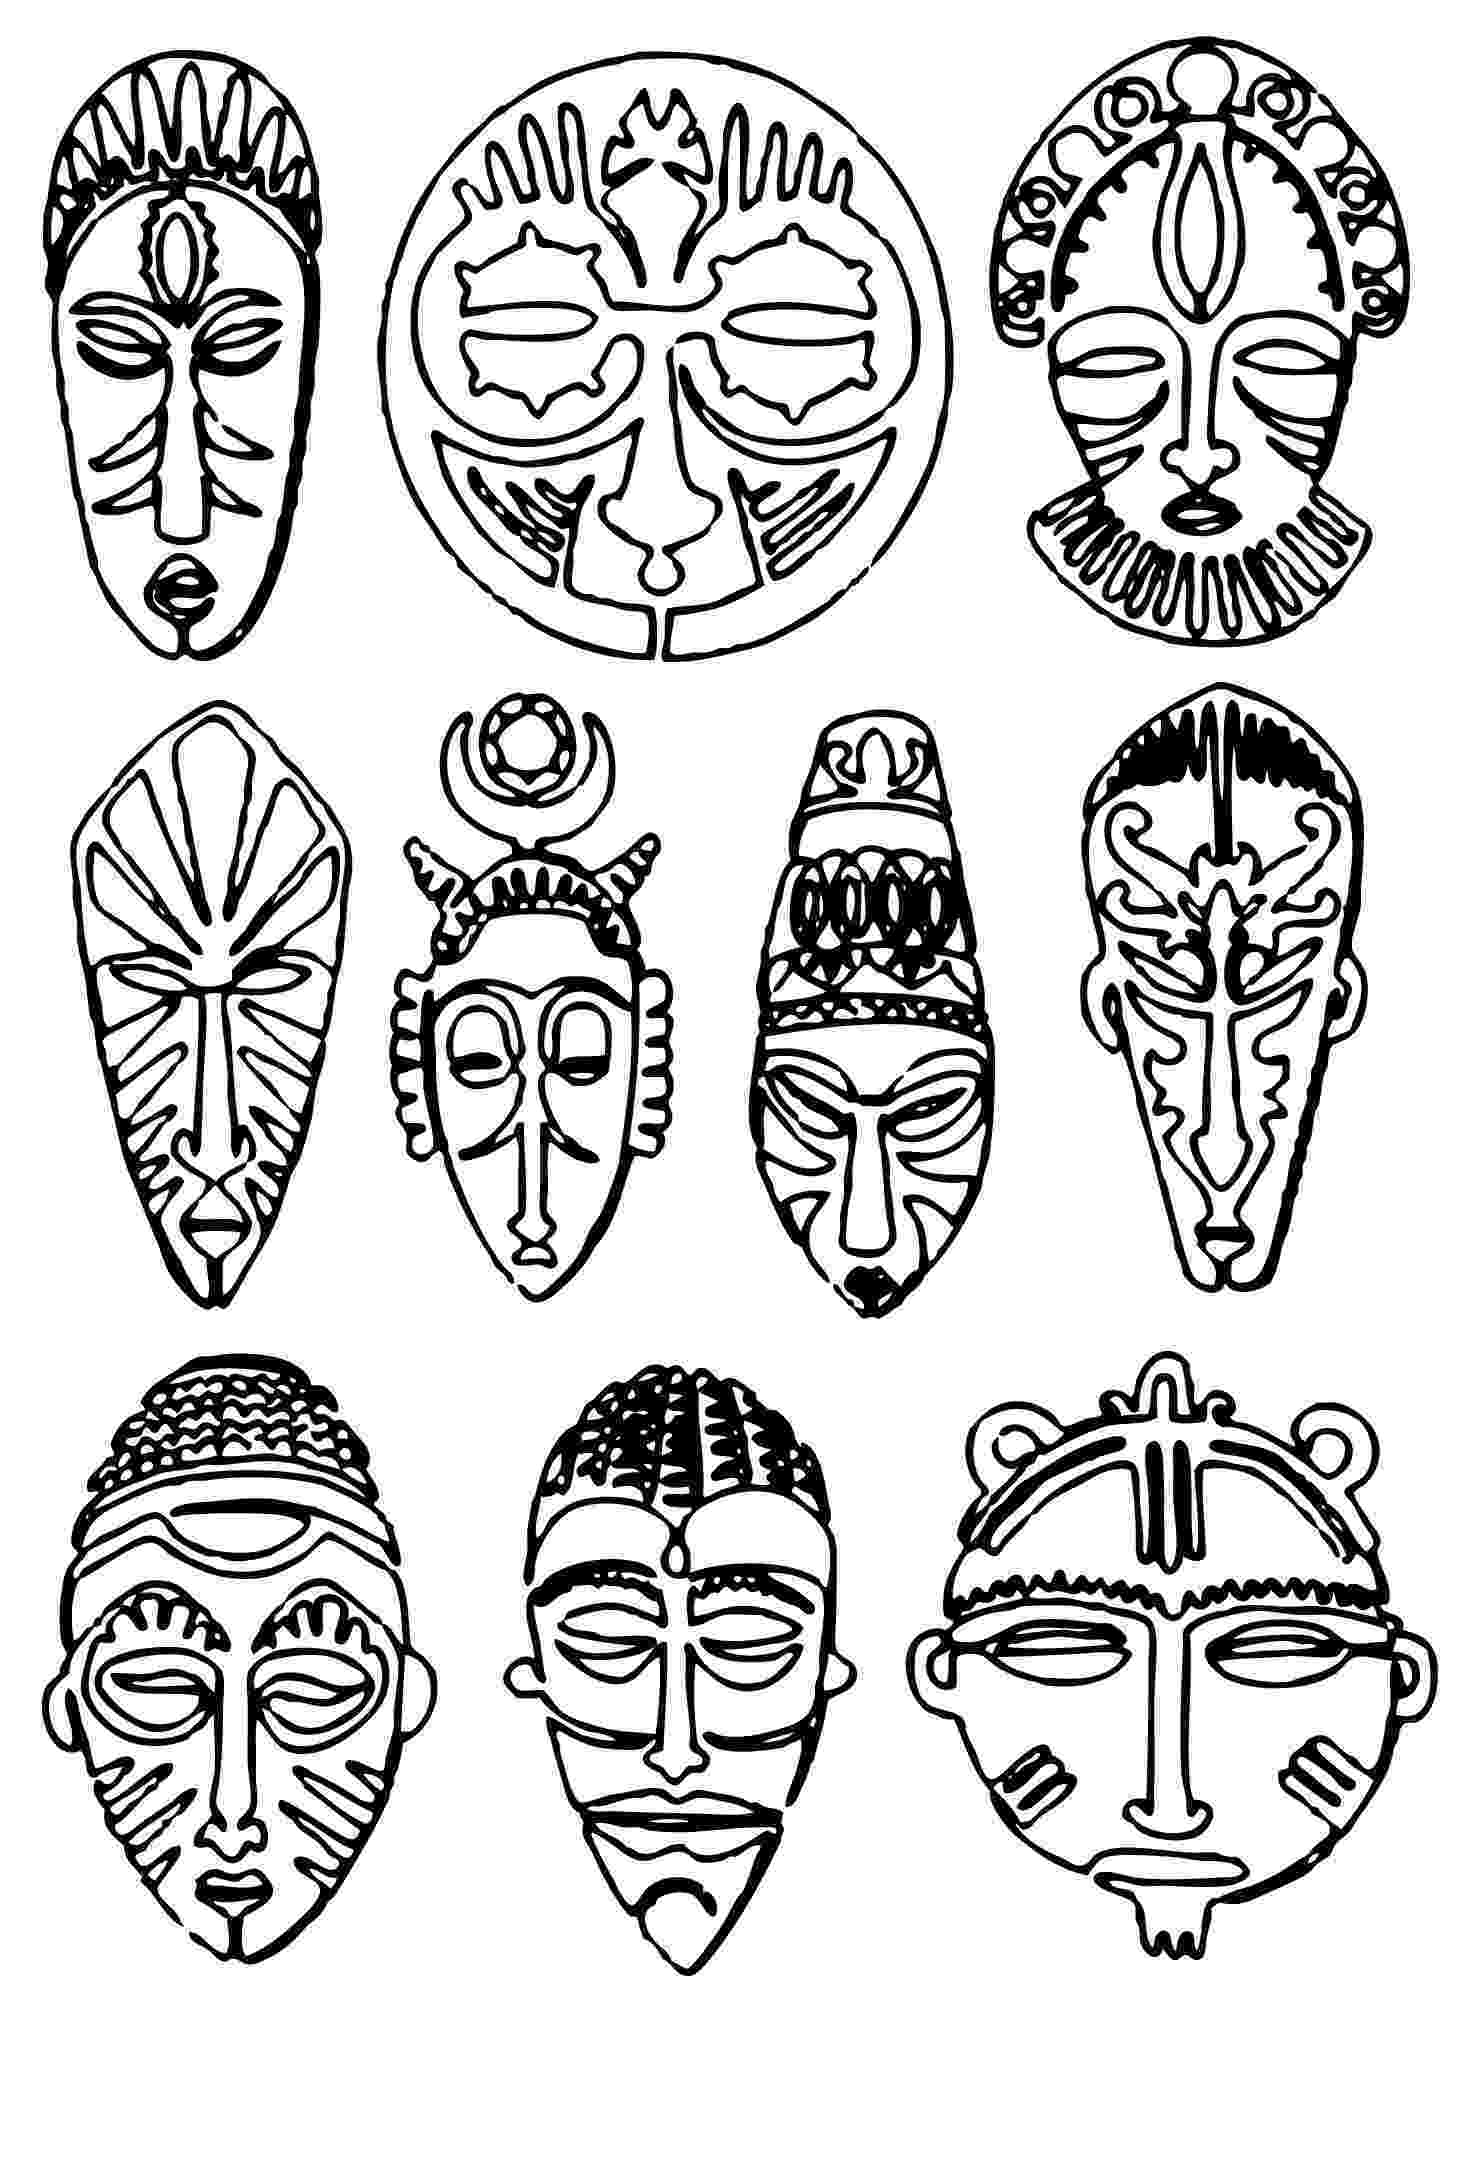 african mask template httpmedia cache ec0pinimgcomoriginals4c9760 mask template african